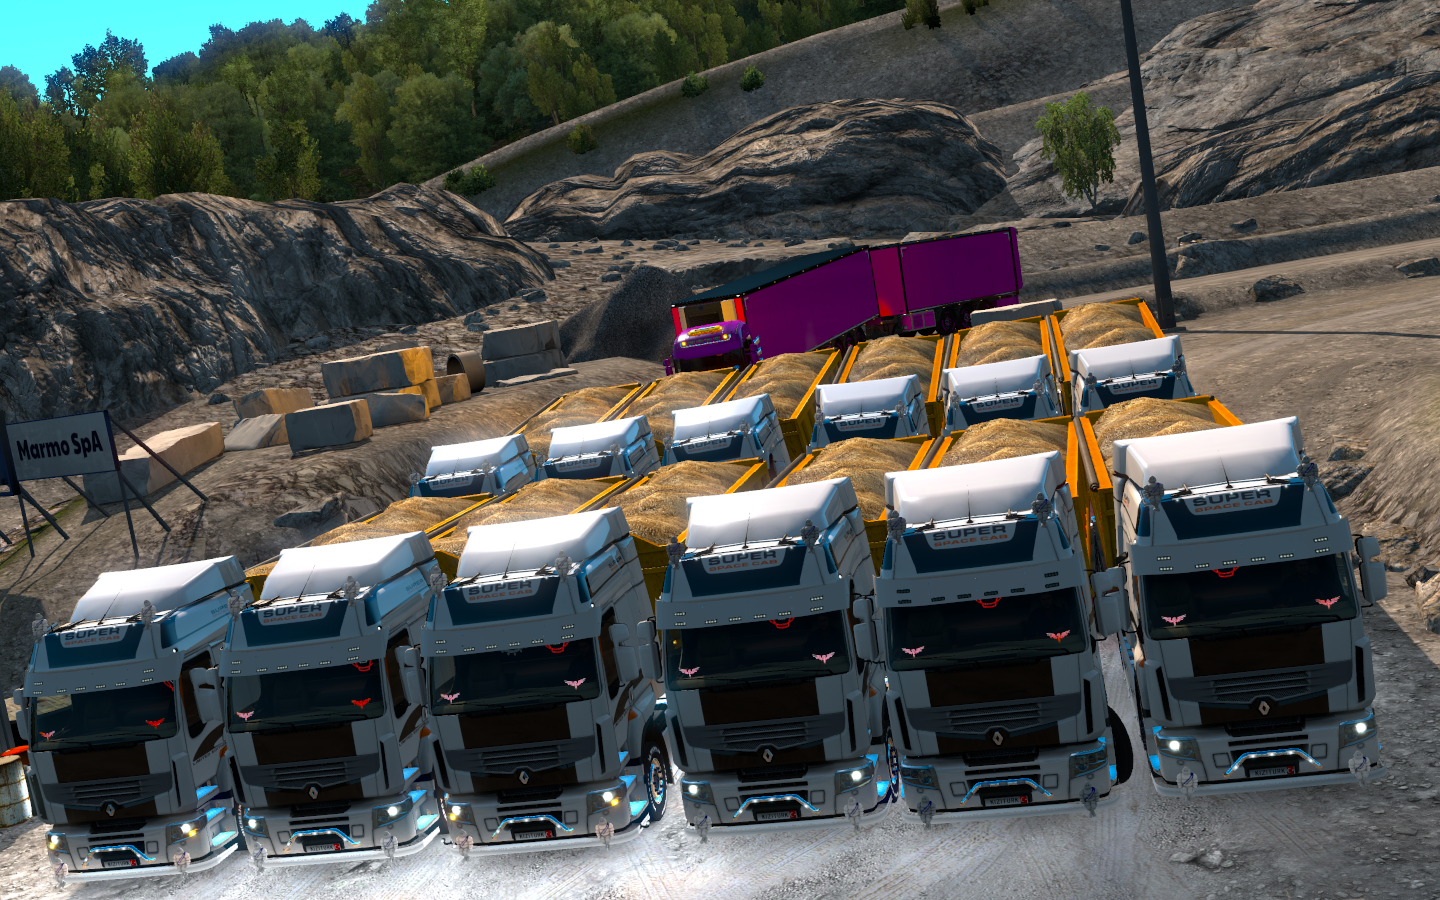 ets2_20190617_205931_00.png